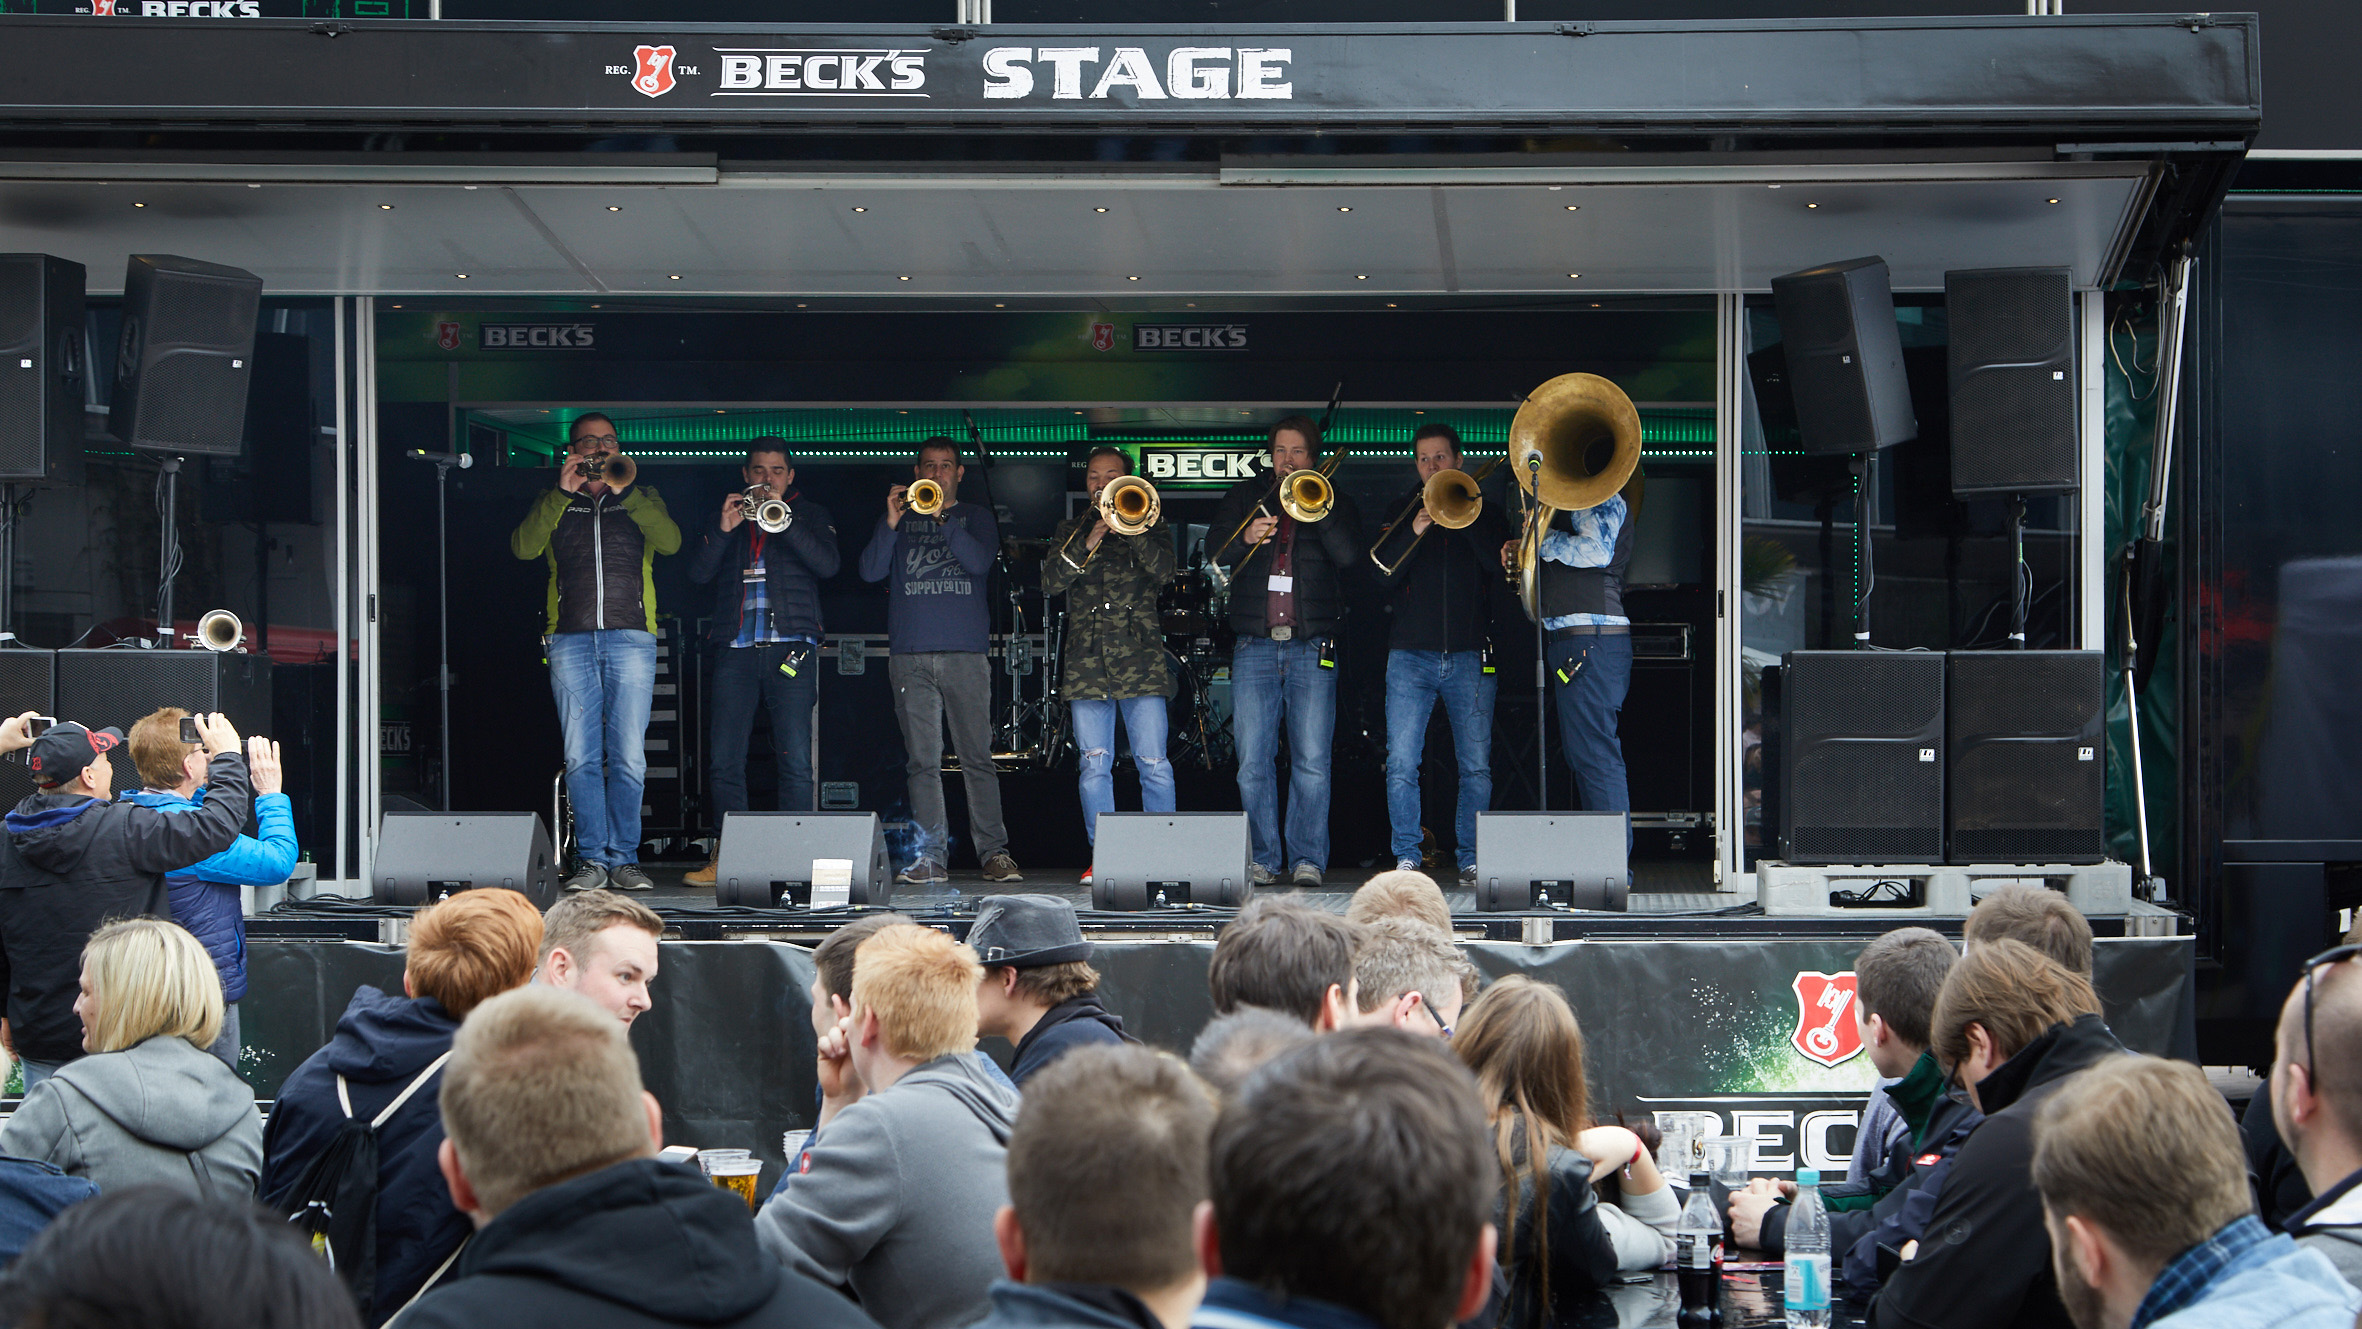 A band plays wind instruments on the Becks stage of the Musikmesse